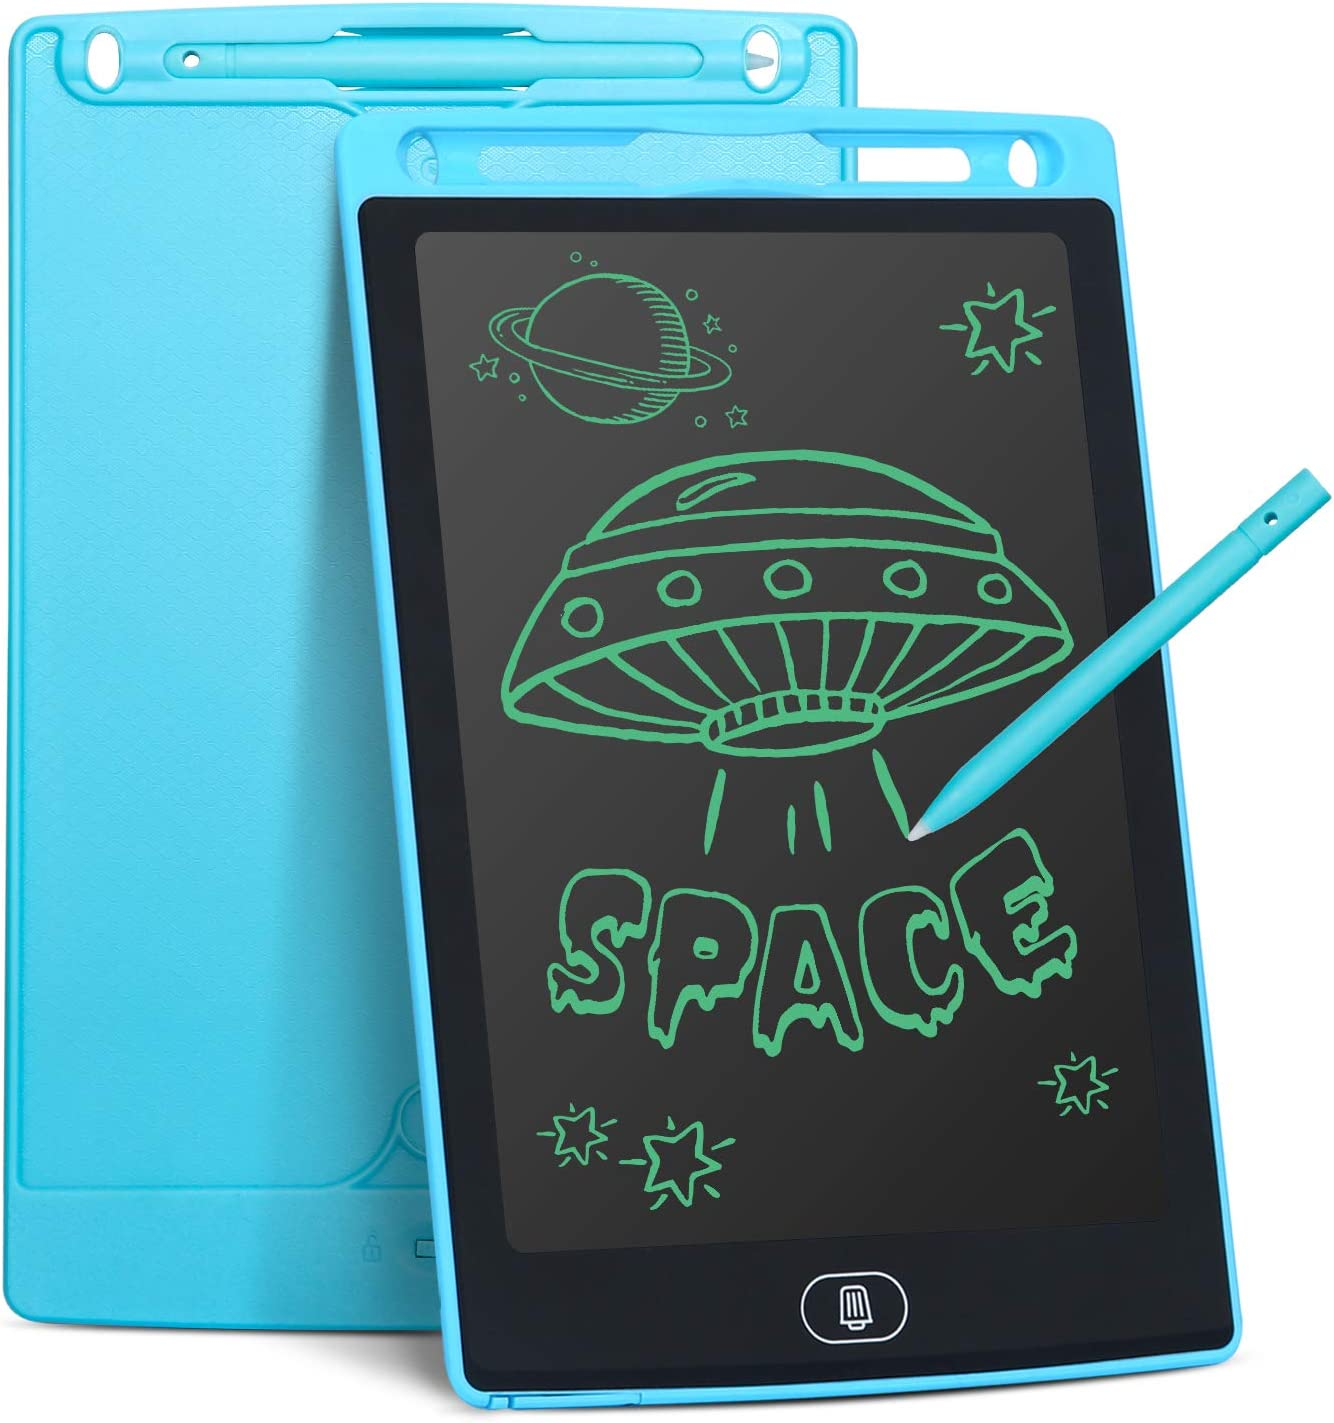 8.5 Inch Electronic Writing Drawing Doodle Board Tablet Digital Ewriter Pad Office Home School Handwriting Pad Memo Notebook LCD Electronic Writing Tablet Color : Black for Kids and Adults